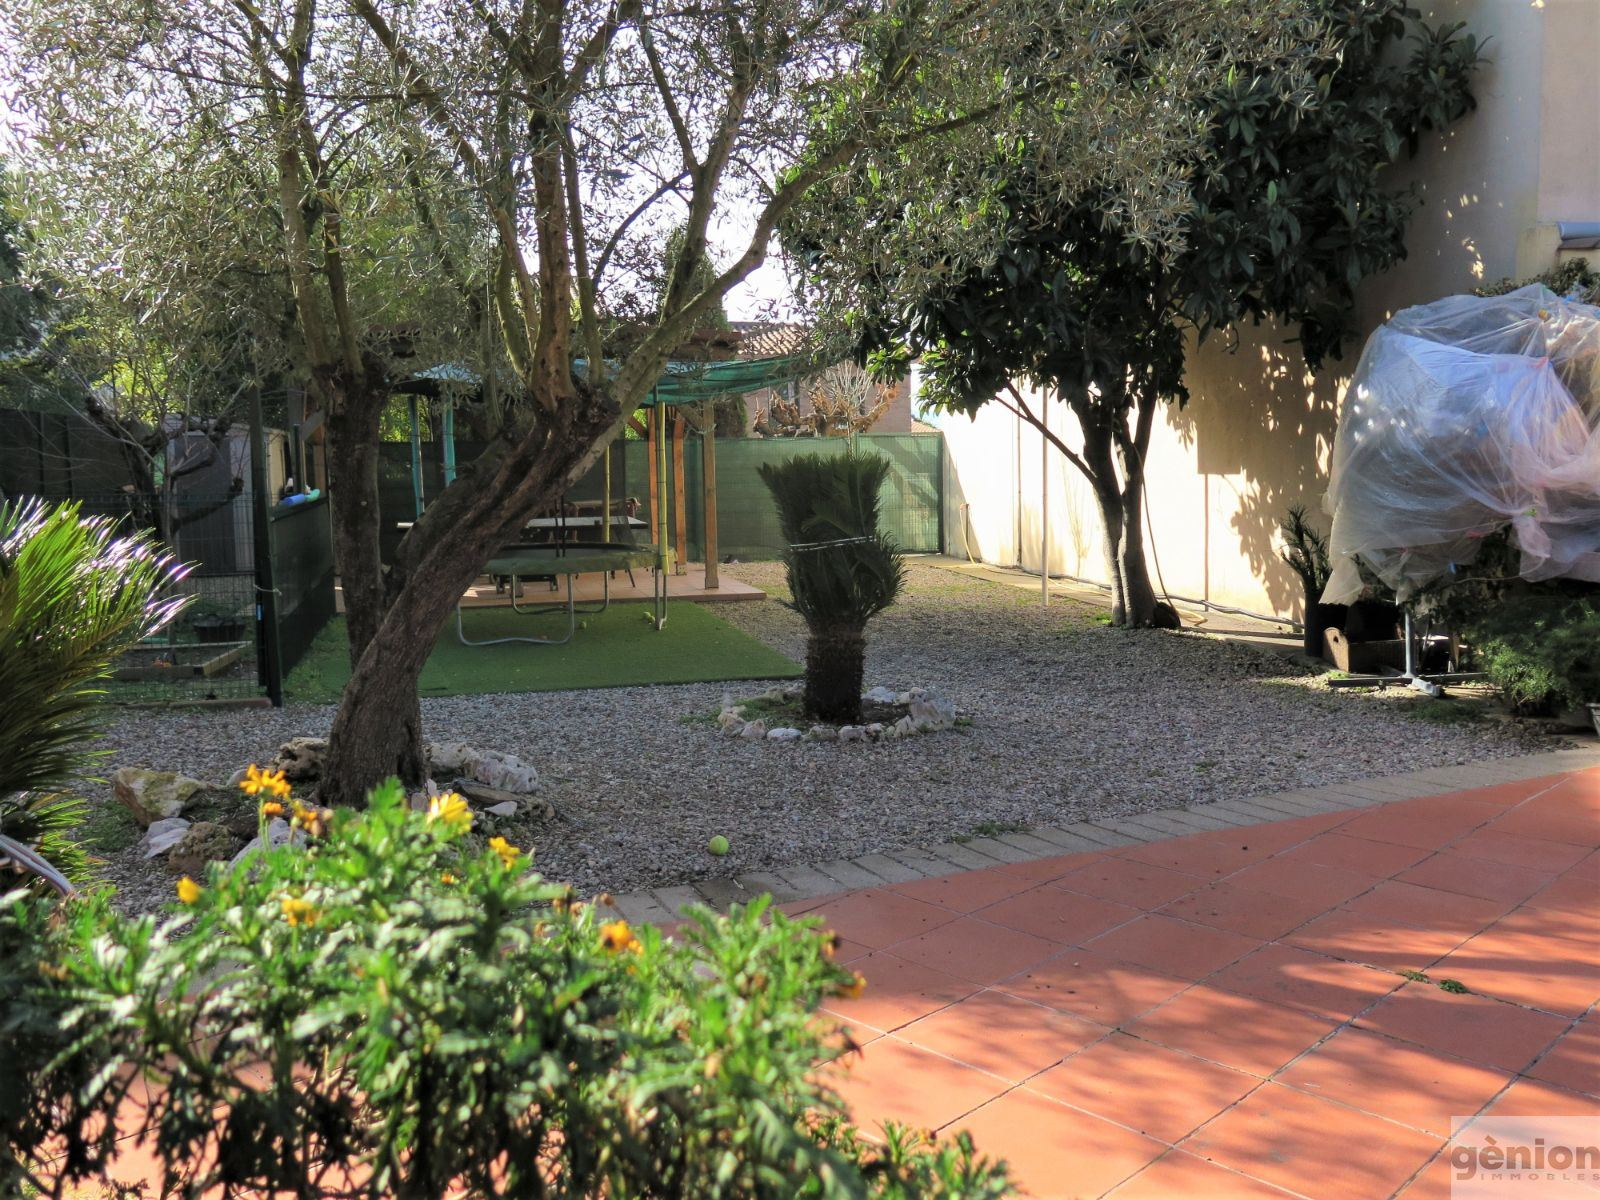 HOUSE IN PALAU, GIRONA. GROSS FLOOR AREA OF 389 m² ON AN 815 m² PLOT + PROJECT FOR 169 m² SEMI-ATTACHED HOUSE